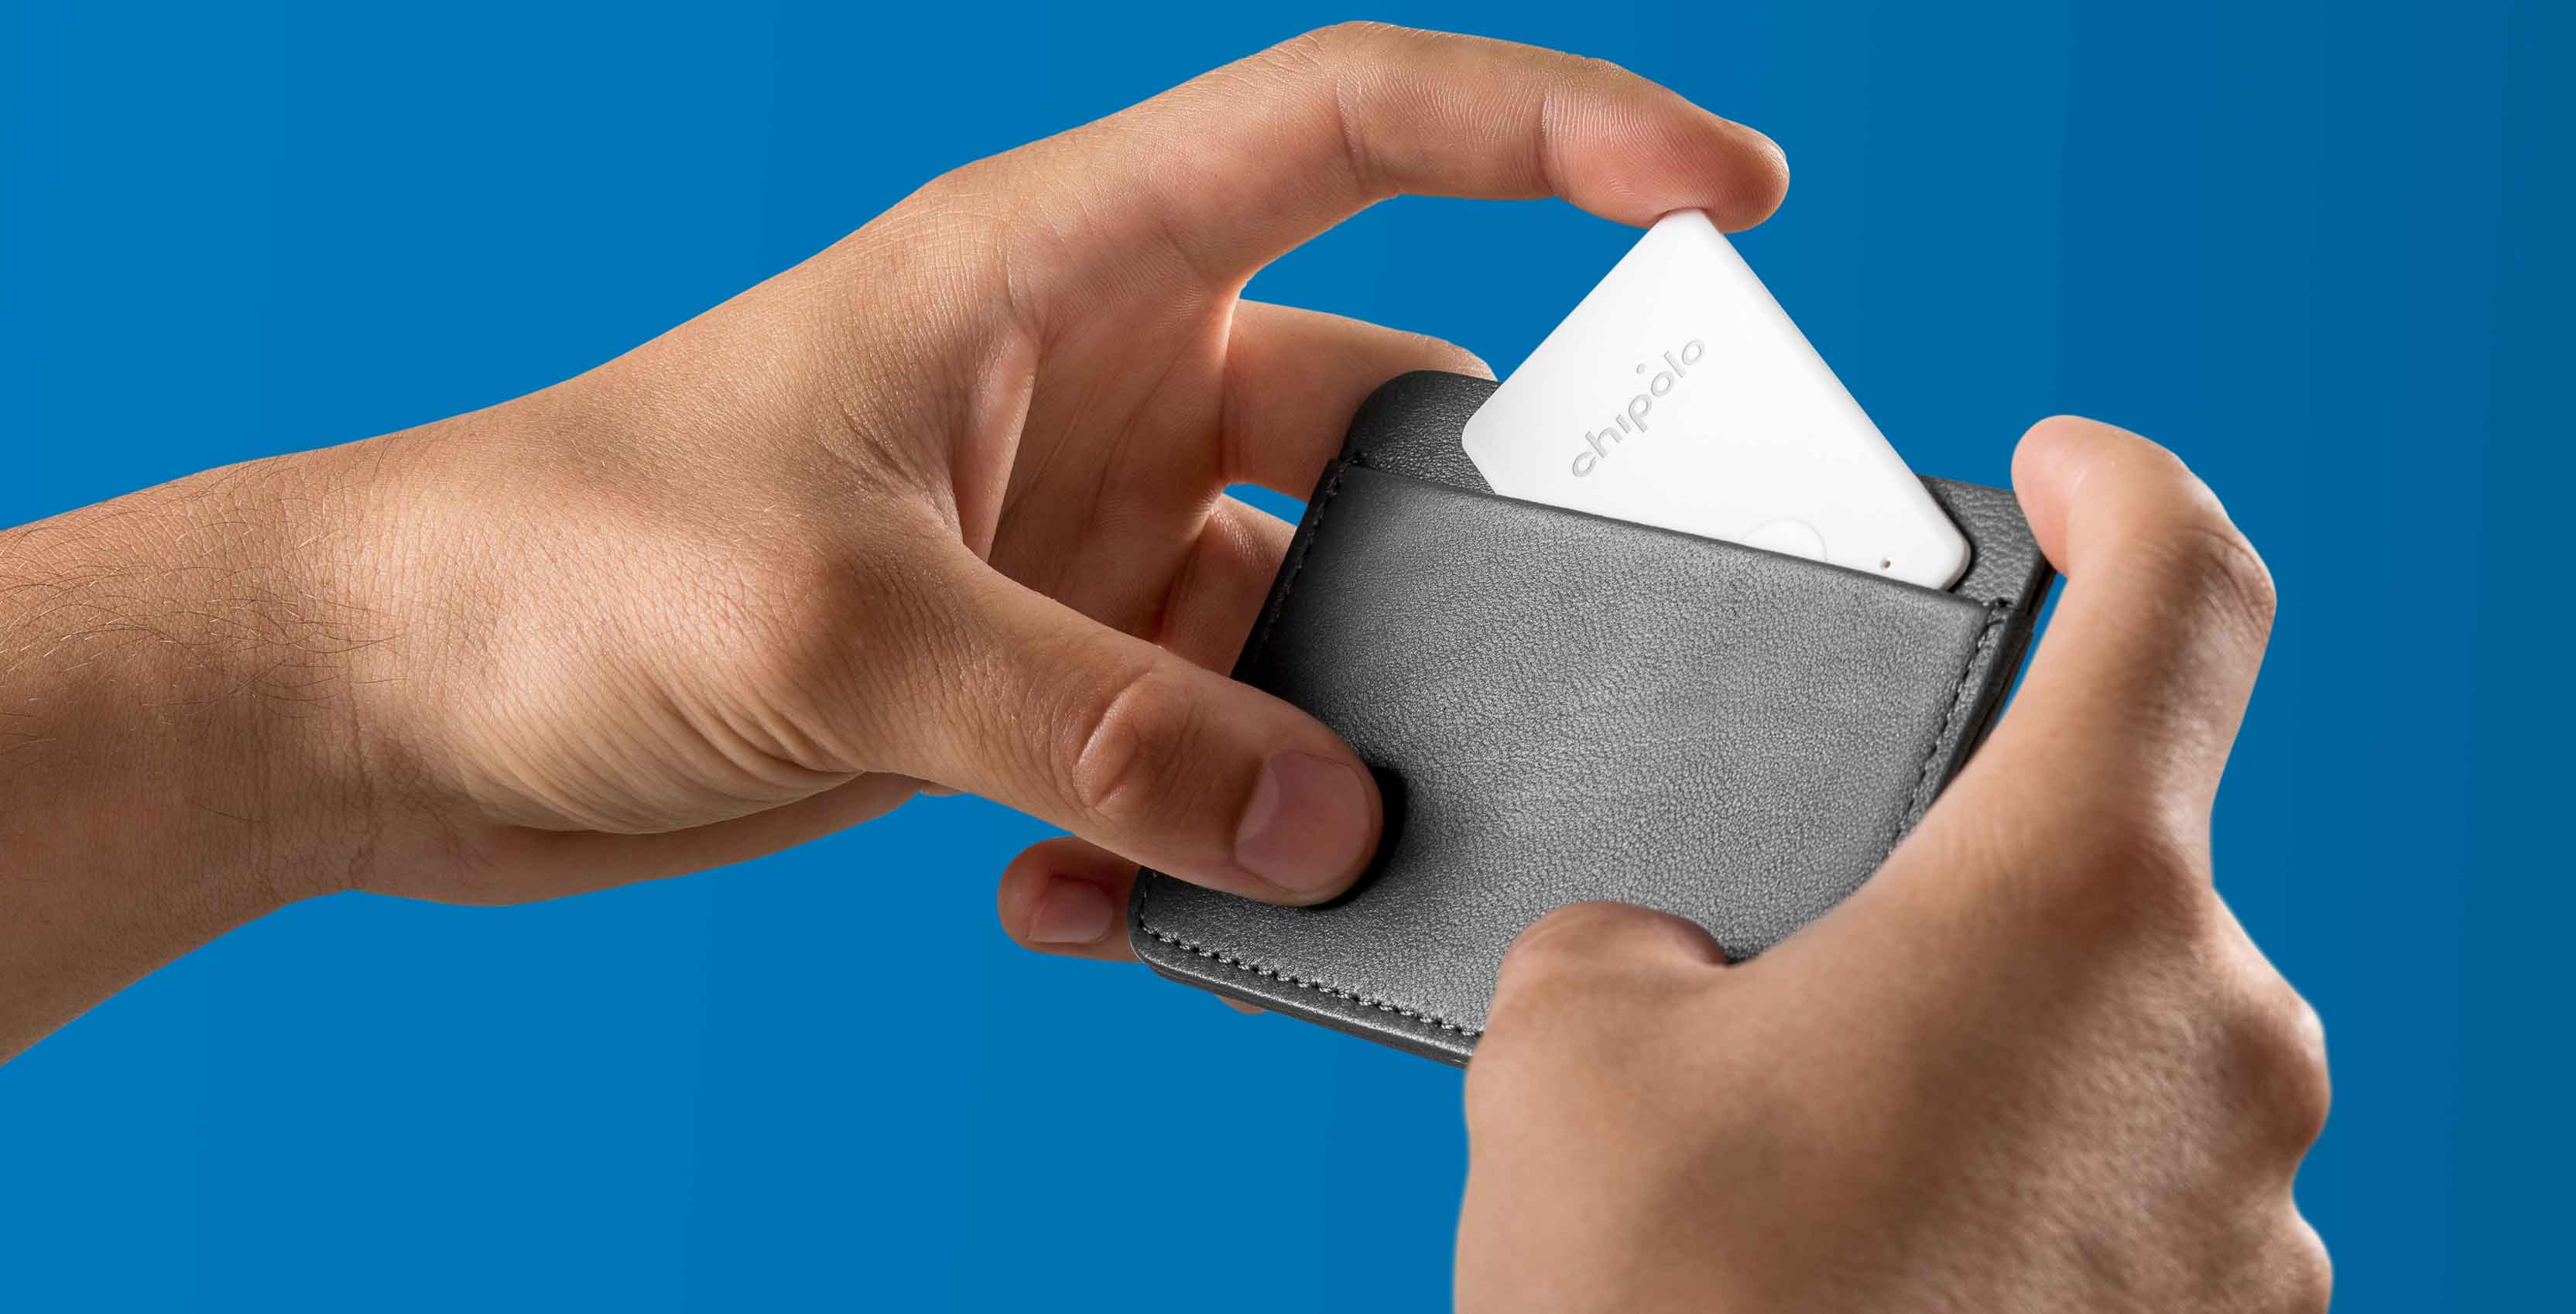 An image showing the Chipolo Card bluetooth tracker